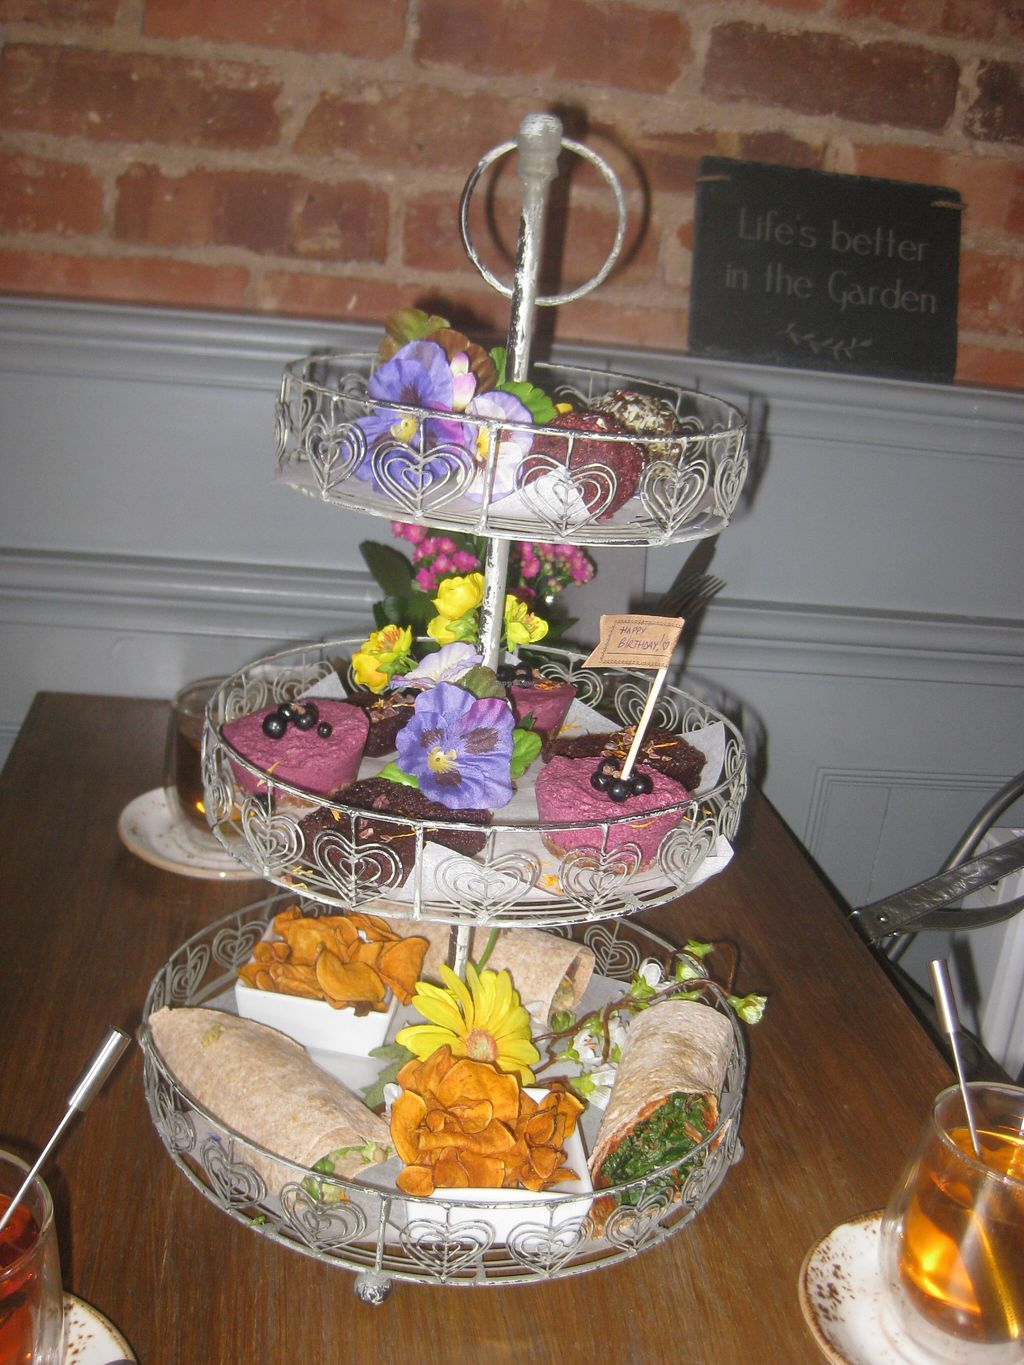 """Photo of The Garden  by <a href=""""/members/profile/jennyc32"""">jennyc32</a> <br/>Vegan afternoon tea <br/> August 9, 2015  - <a href='/contact/abuse/image/53896/112823'>Report</a>"""